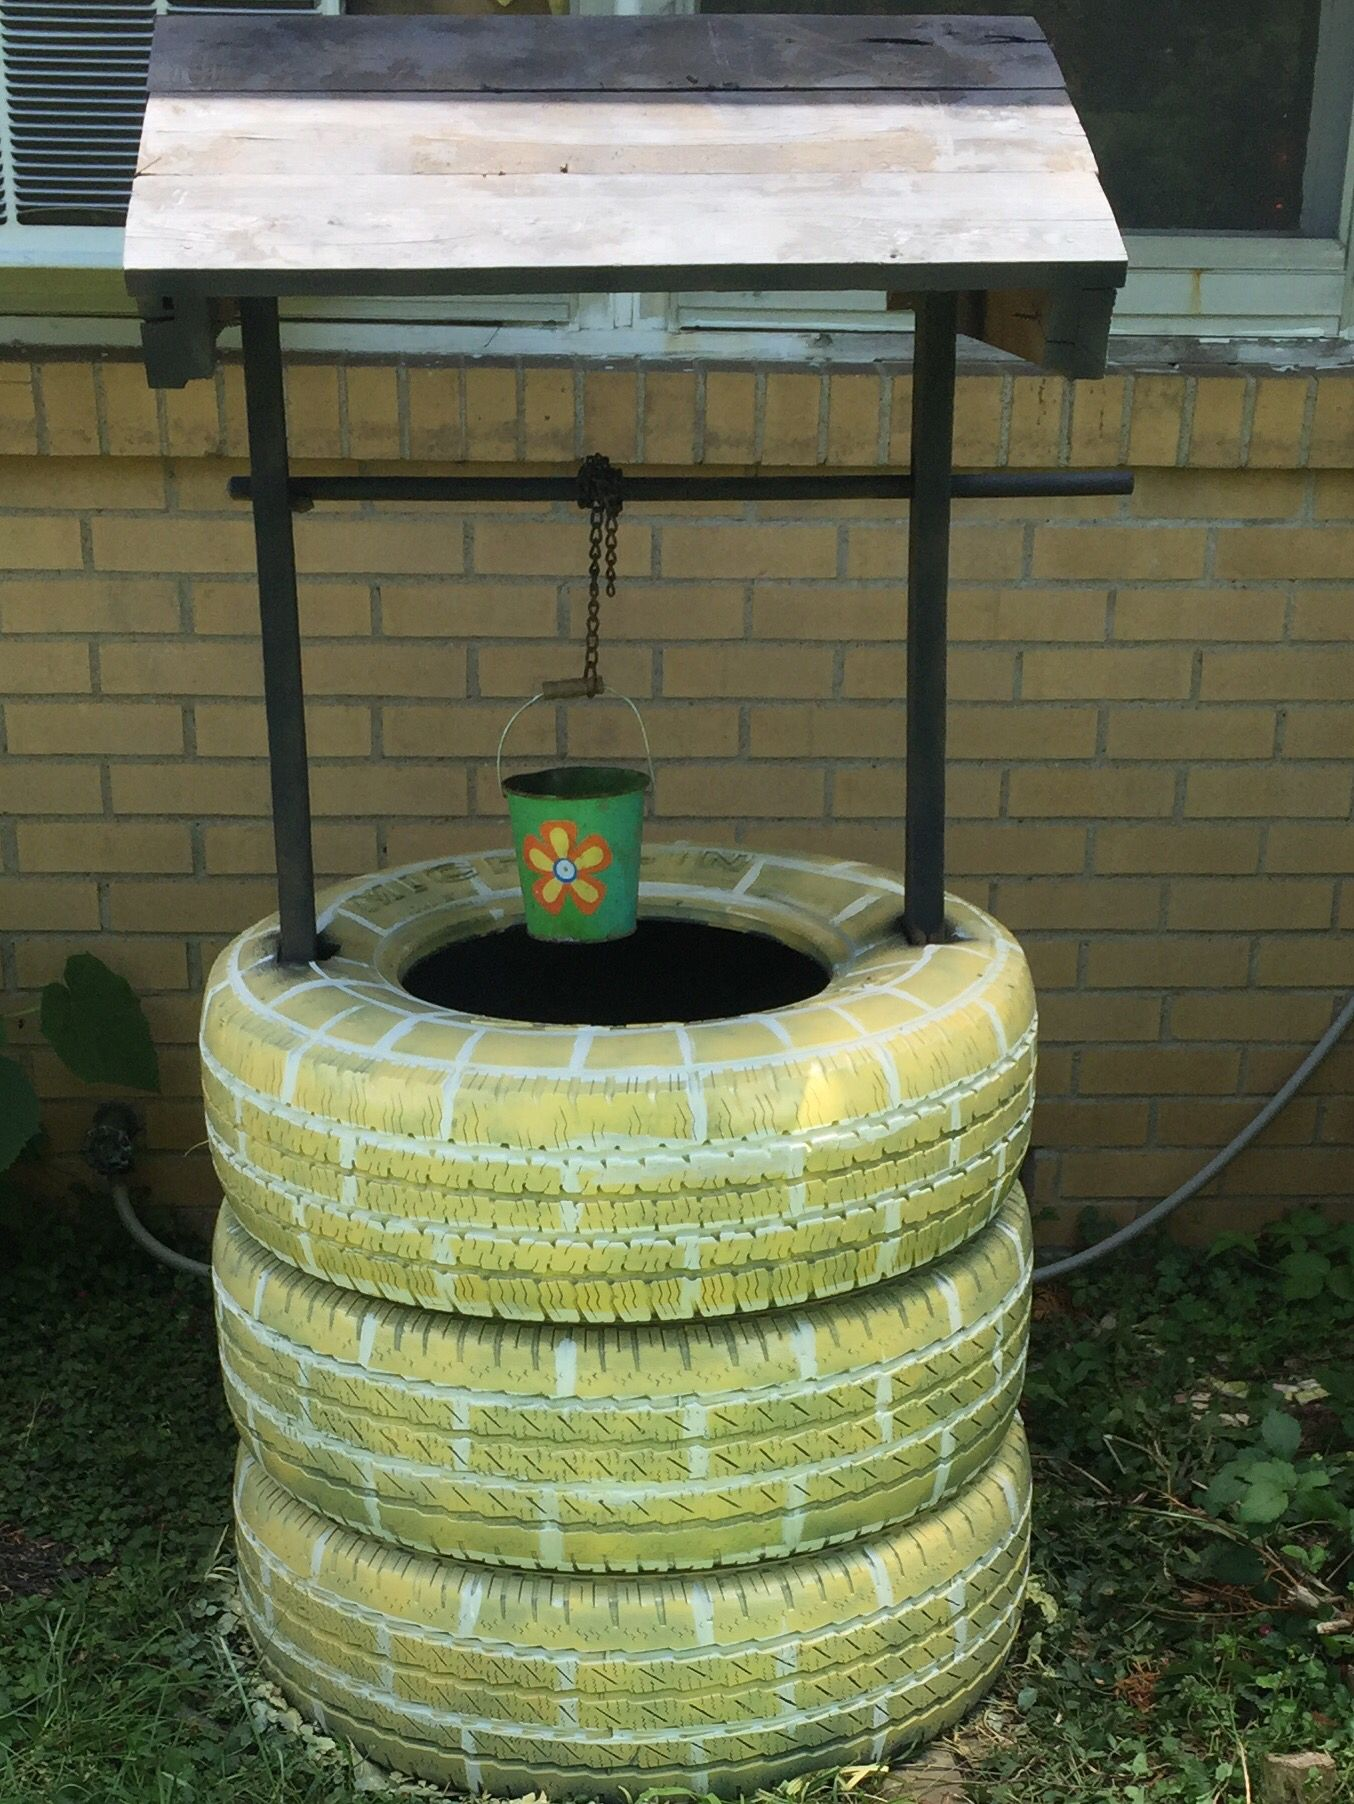 My Old Tire Wishing Well Butterfly Garden Design Diy Playground Backyard Landscaping Designs